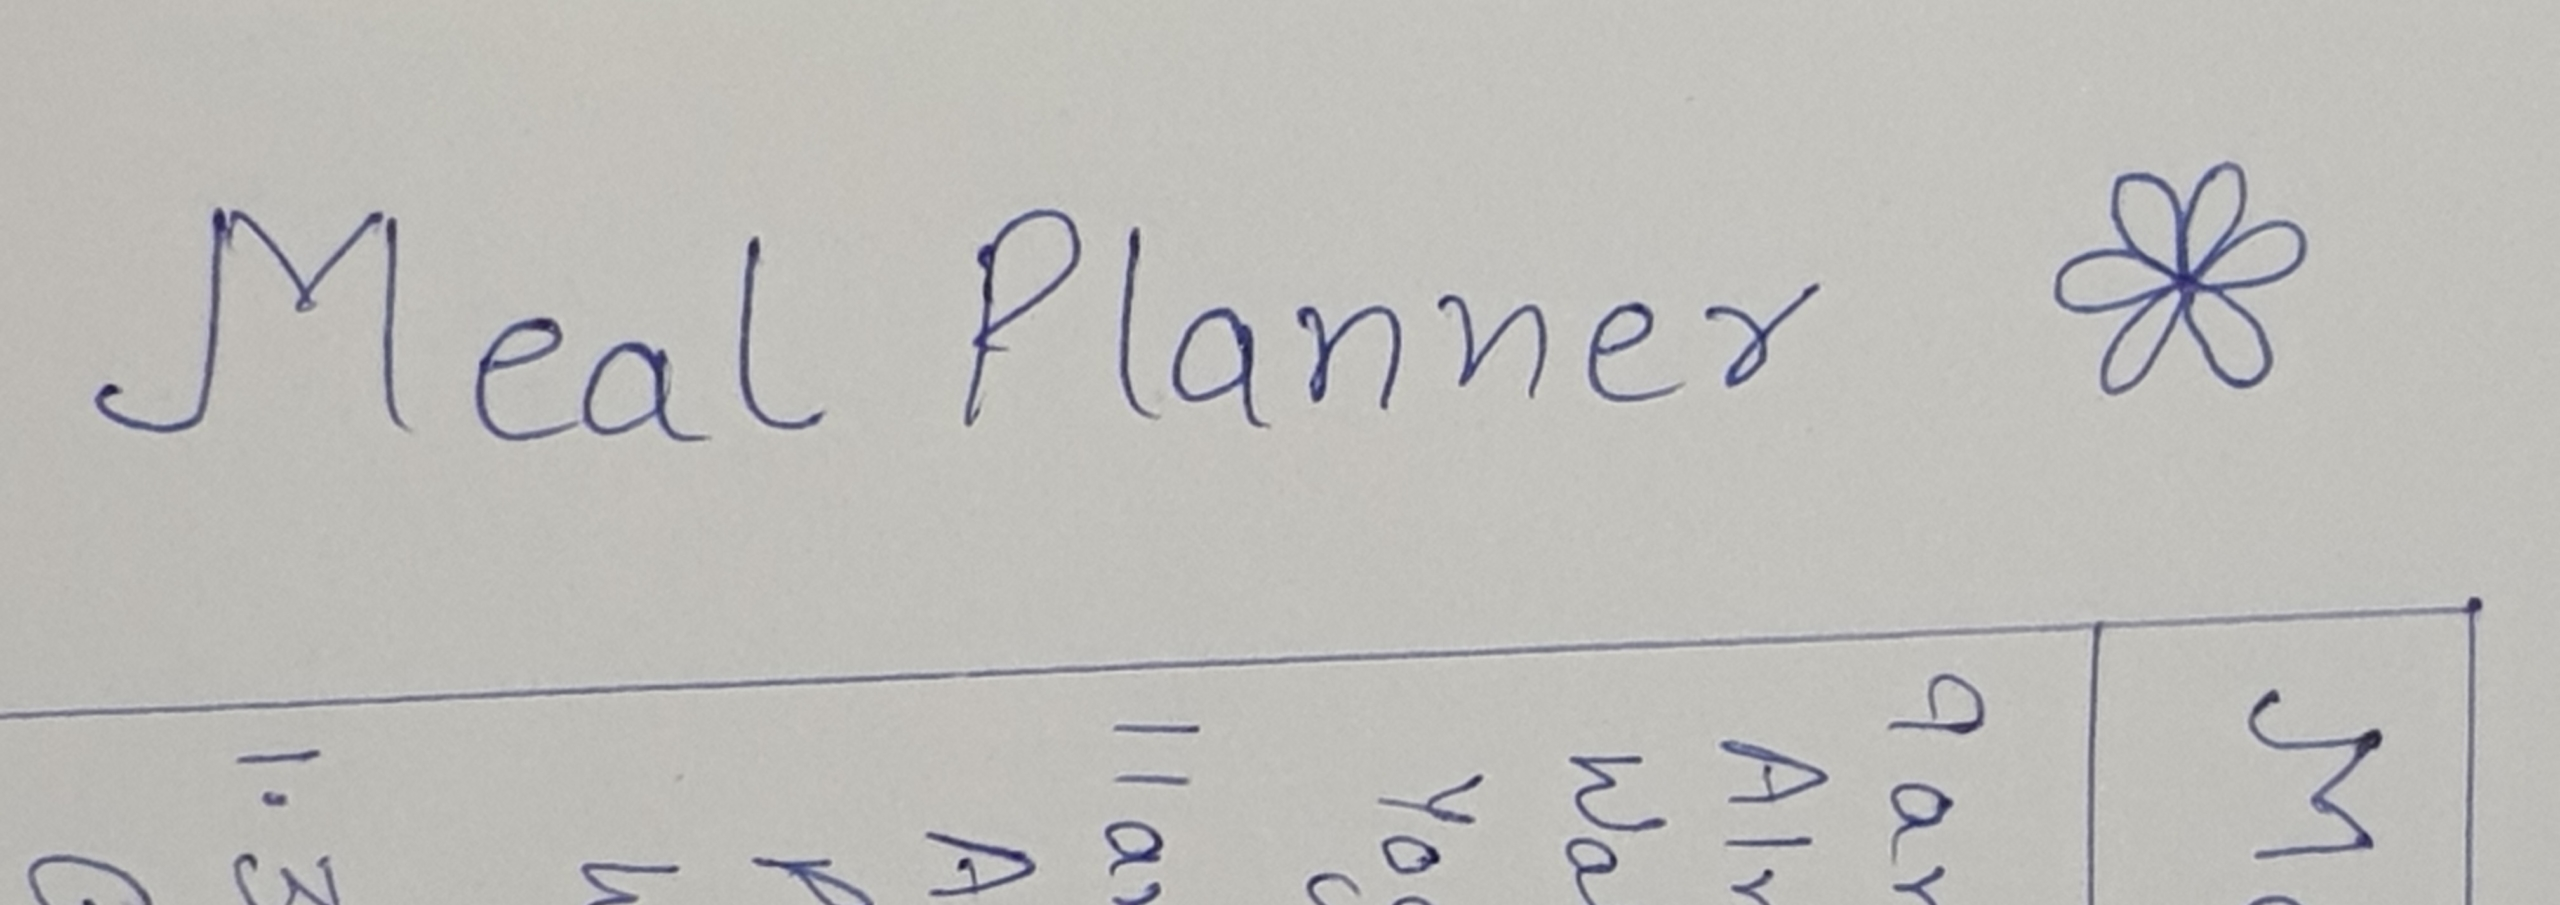 A meal planner